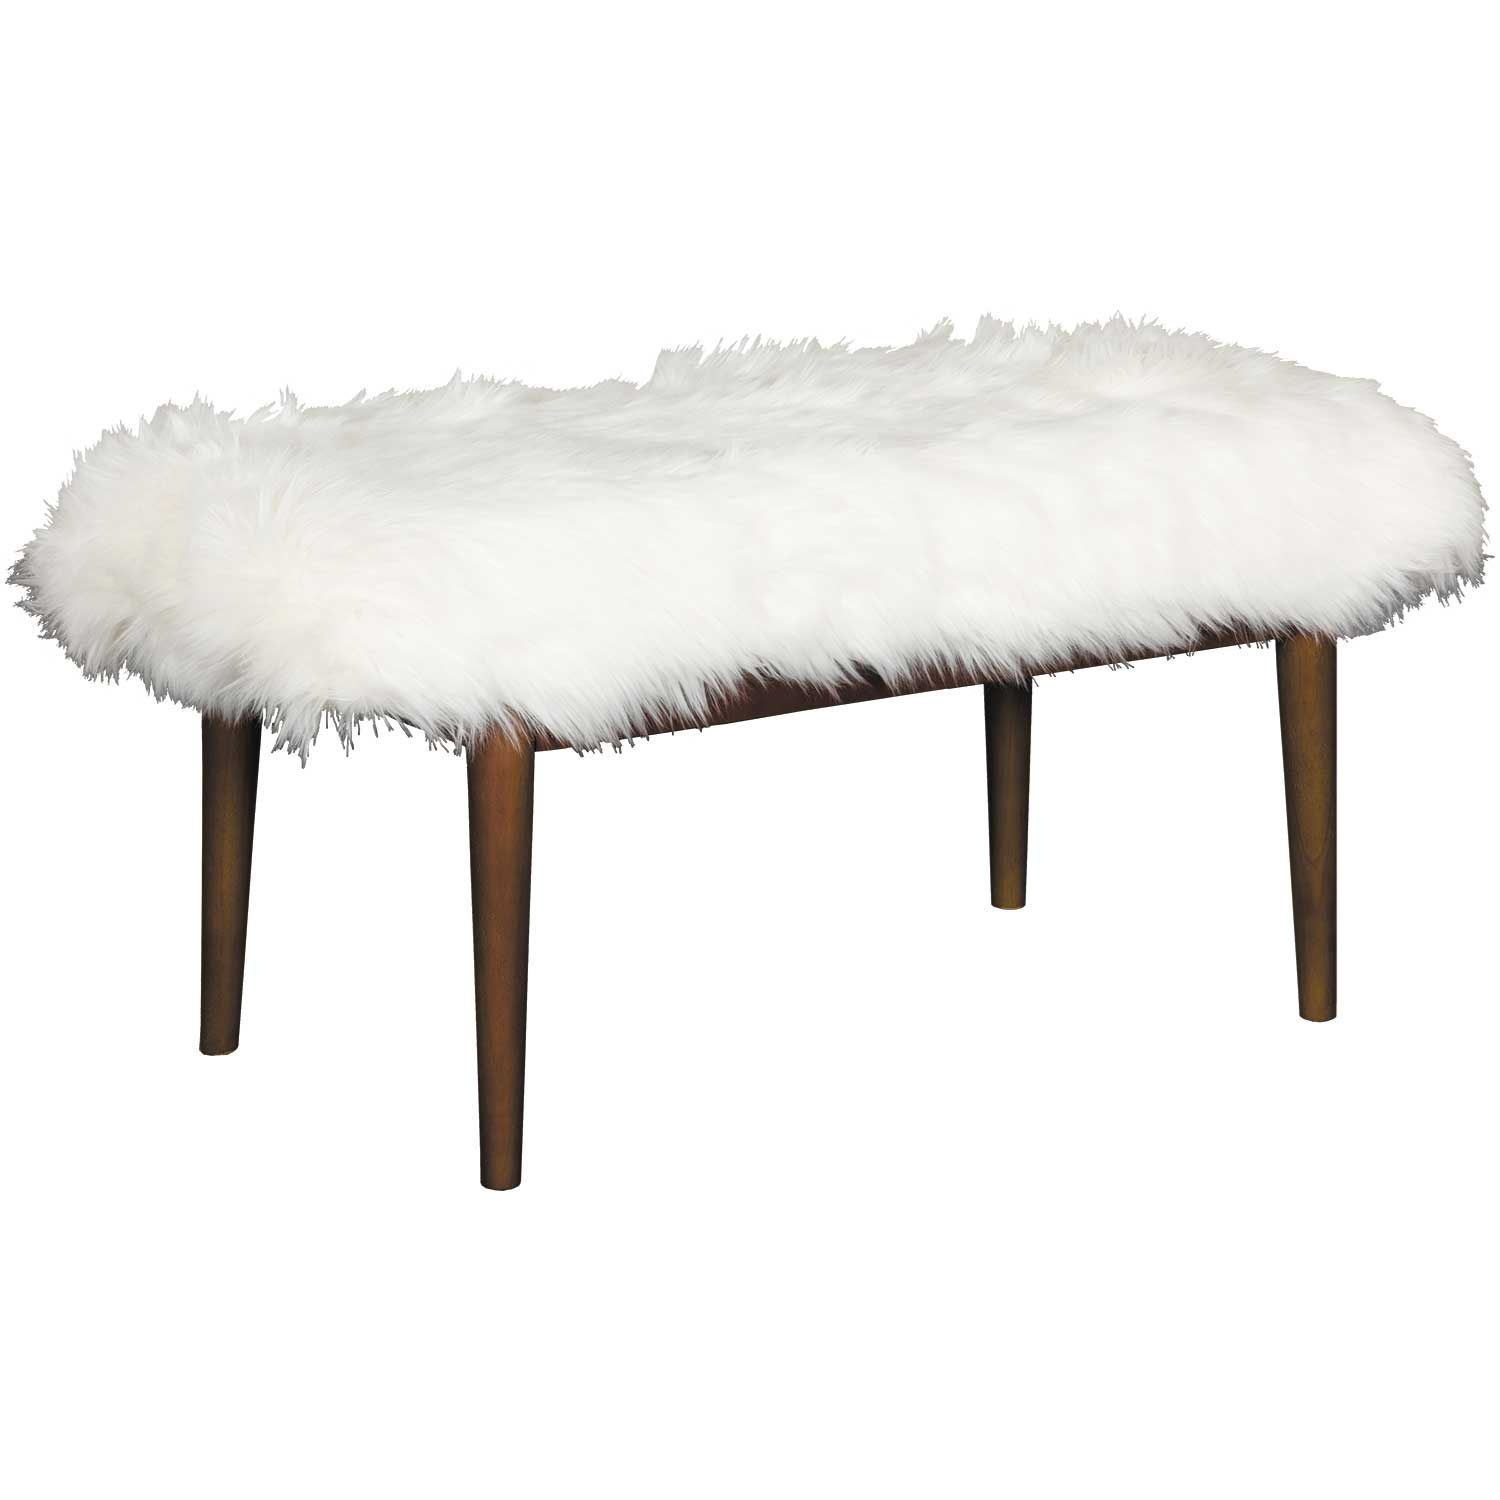 Prime Mongolian Faux Fur Bench Yf 21 Off White Jgw Furniture Squirreltailoven Fun Painted Chair Ideas Images Squirreltailovenorg